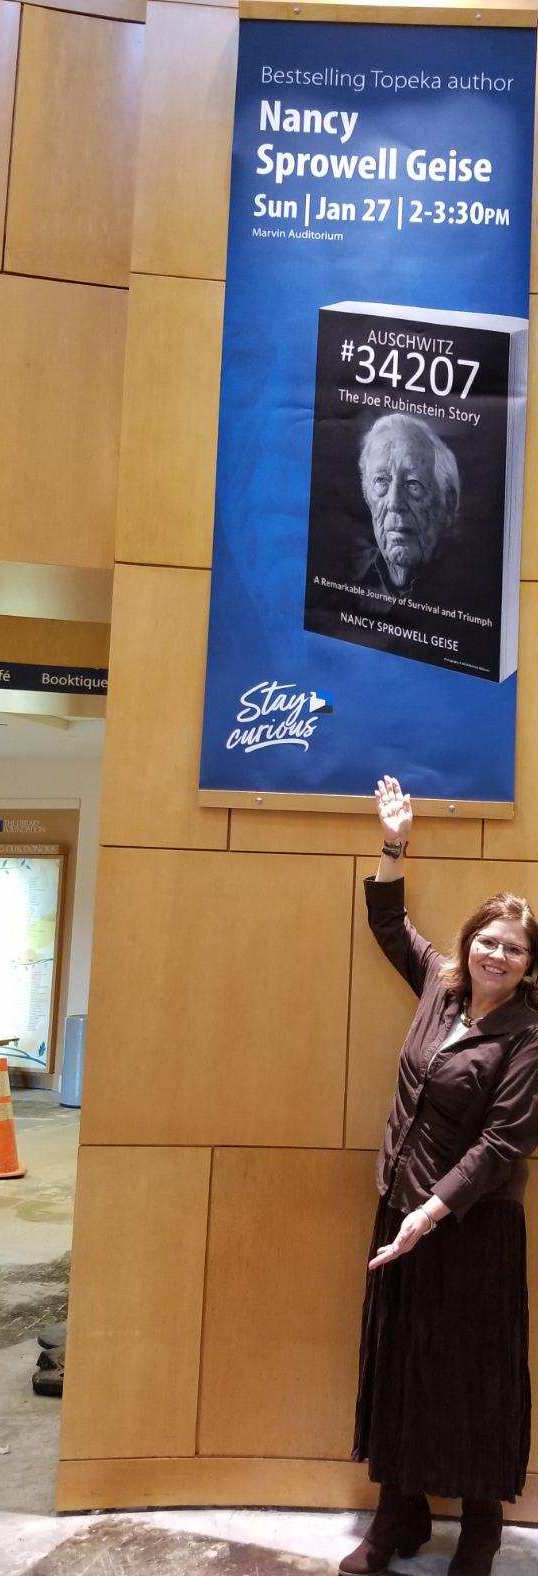 Miranda Ericsson and the staff at the Topeka & Shawnee County Public Library welcomed me with this awesome banner, Jan. 2019